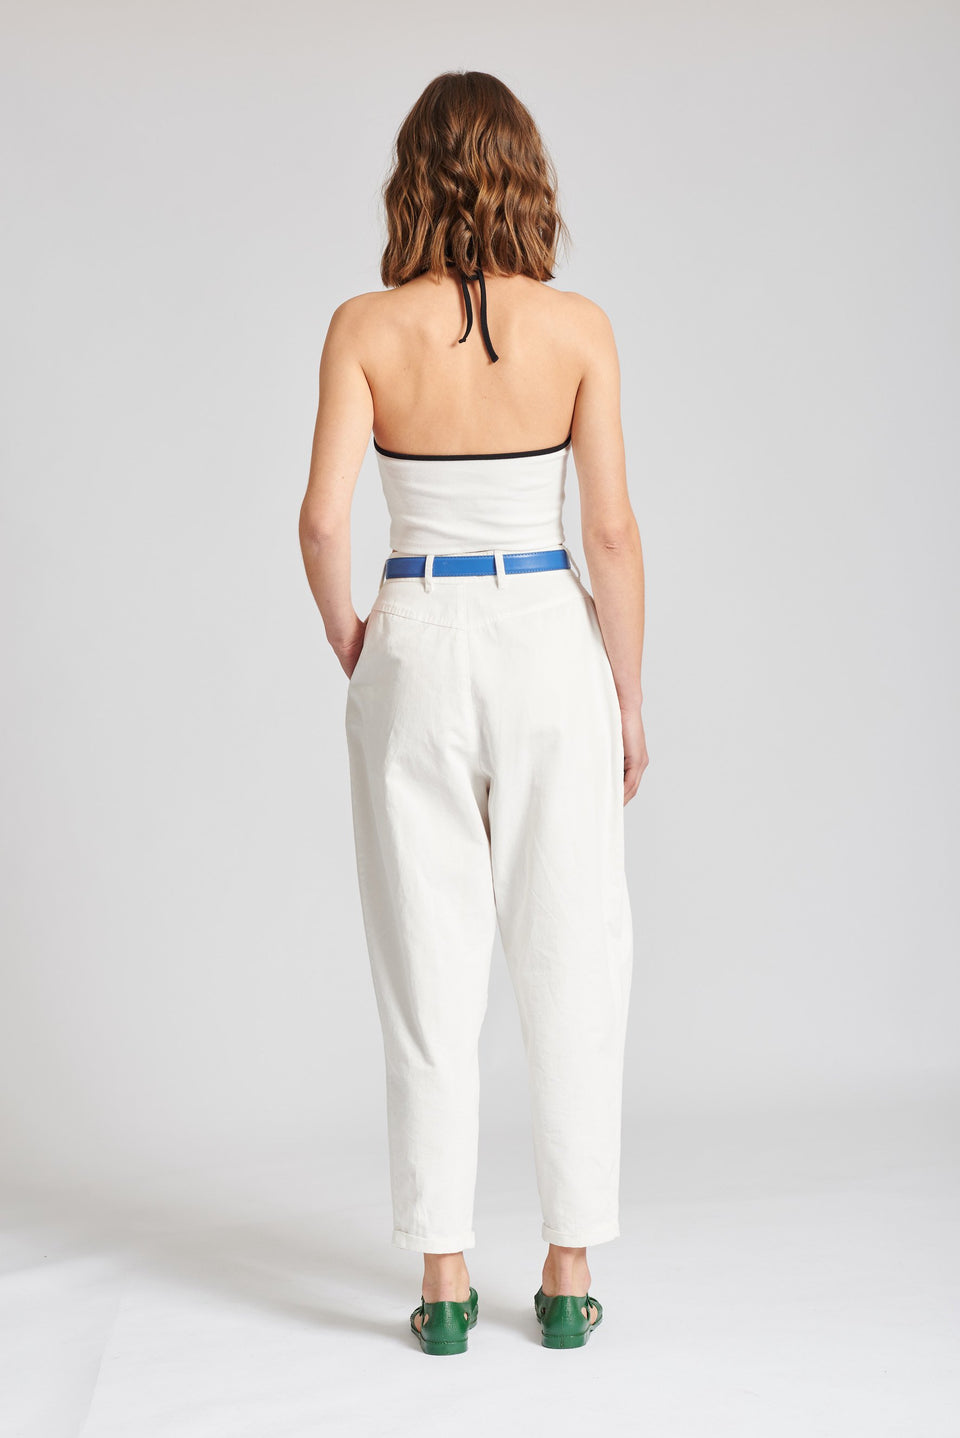 Lodge High Waisted Pleated Pant (CLDL-052 )